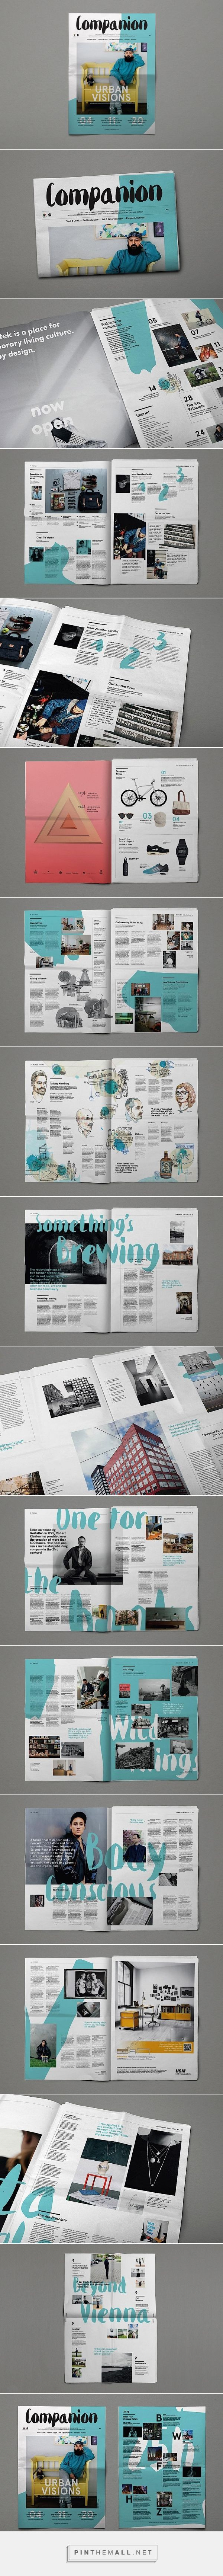 Editorial Design Inspiration: Companion Magazine | Abduzeedo Design Inspiration: